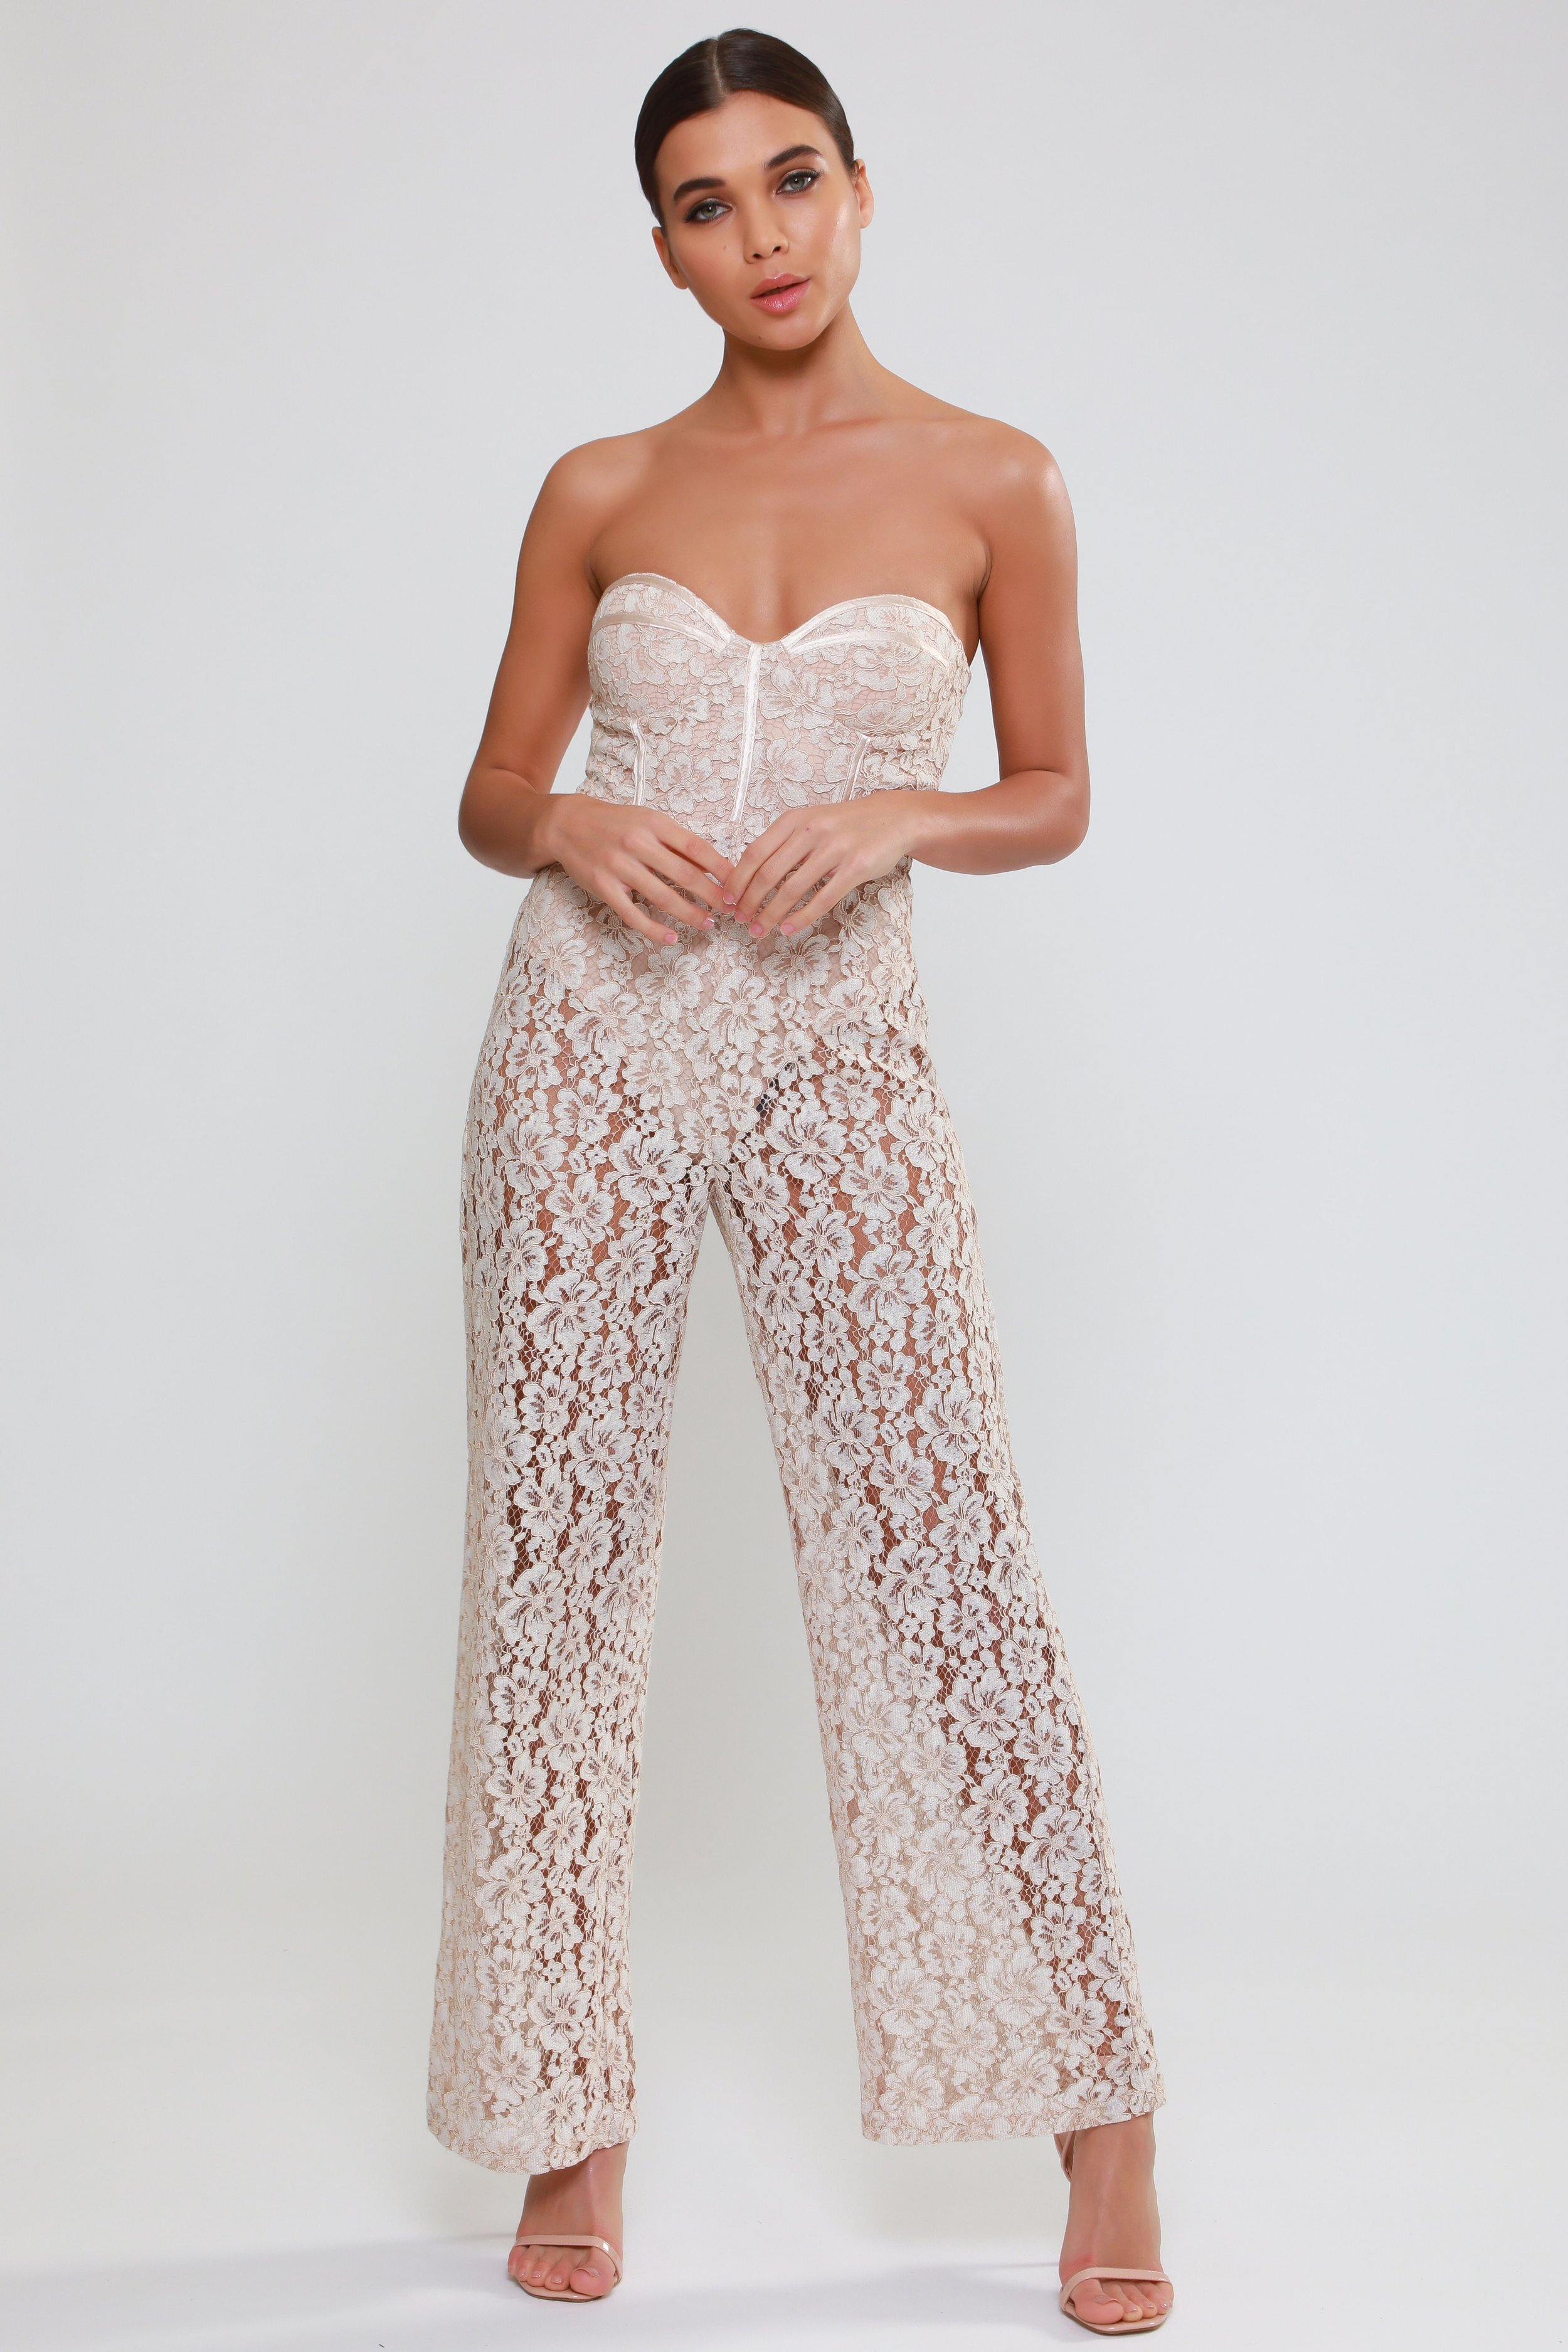 Lace Bralet Jumpsuit  with Knicker Lining   £70.00